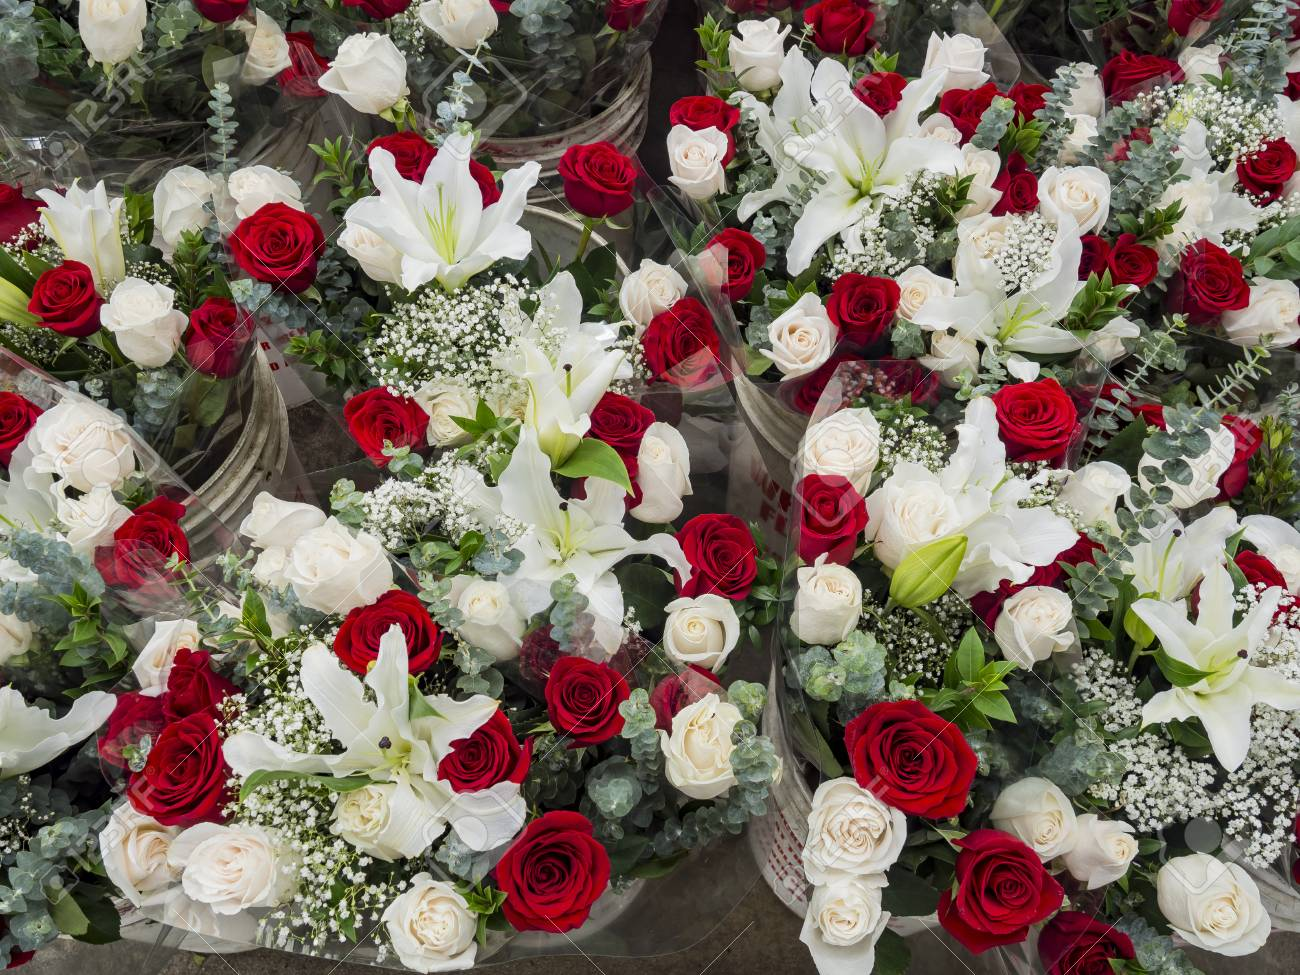 Many Bunches Of Red And White Rose At Flower Market Of Los Angeles